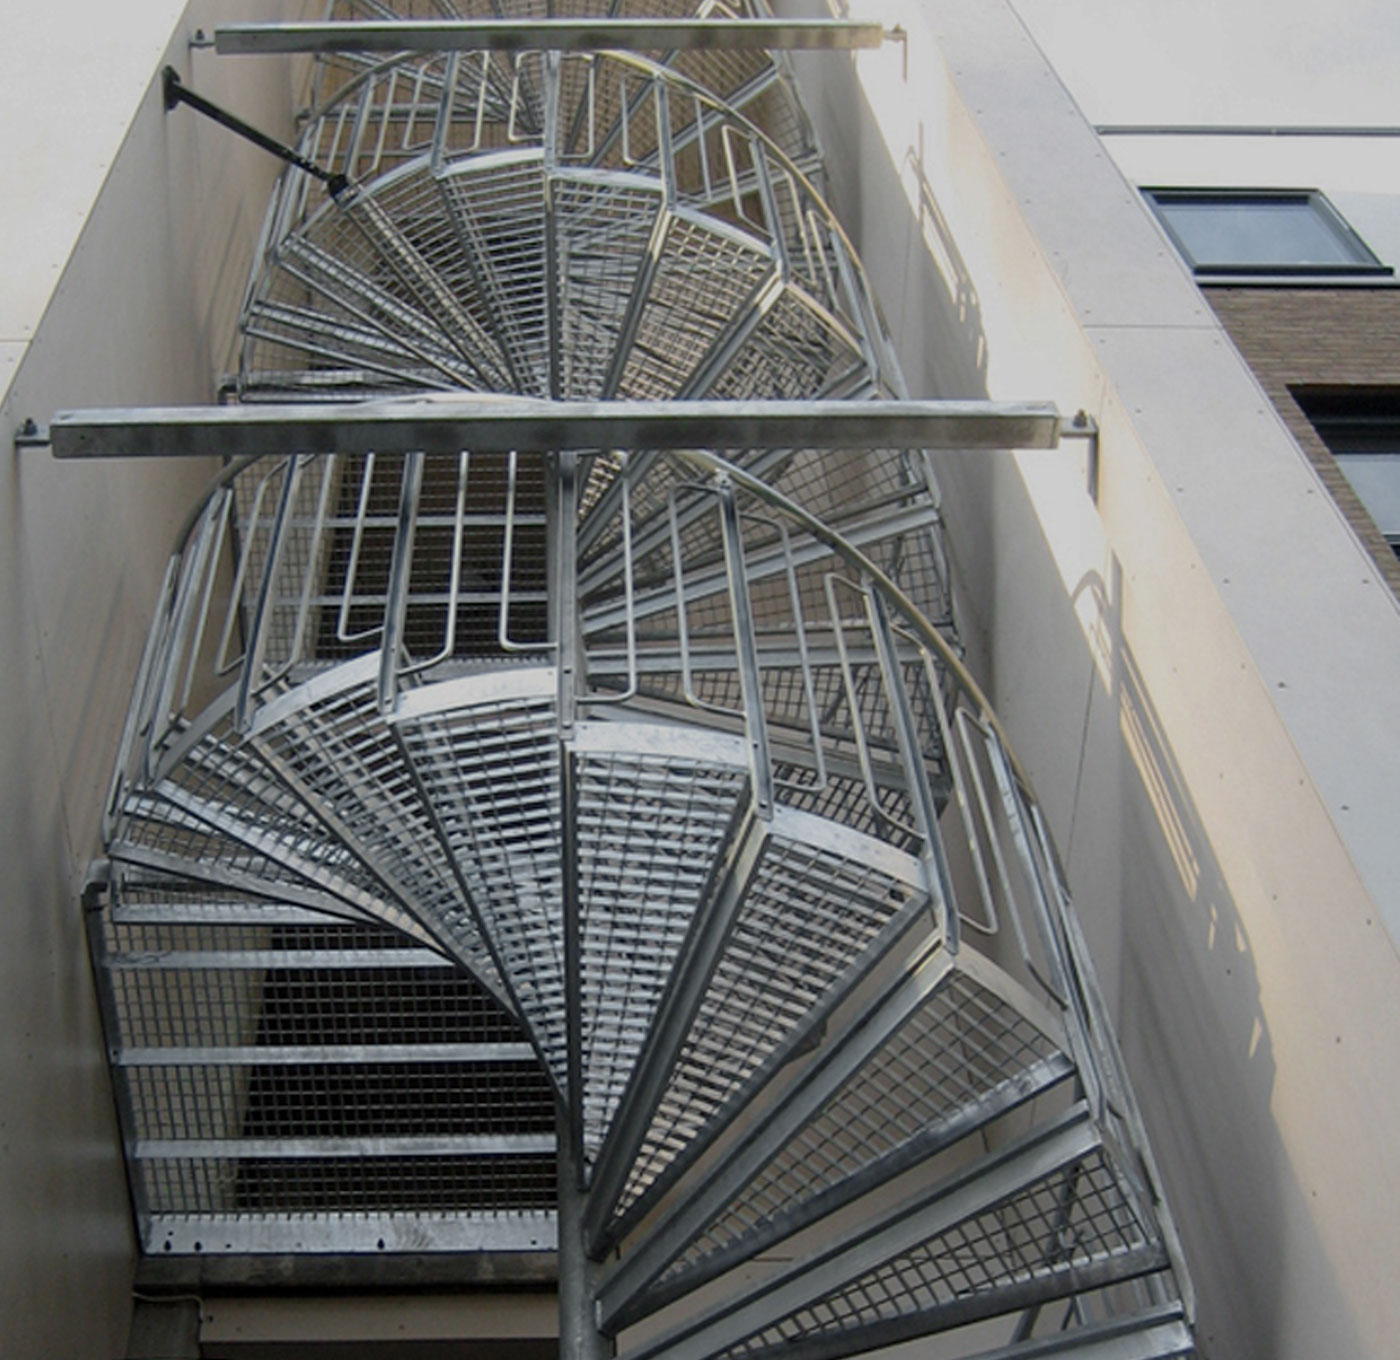 Spiral staircase childsafe railing with press welded grating steps